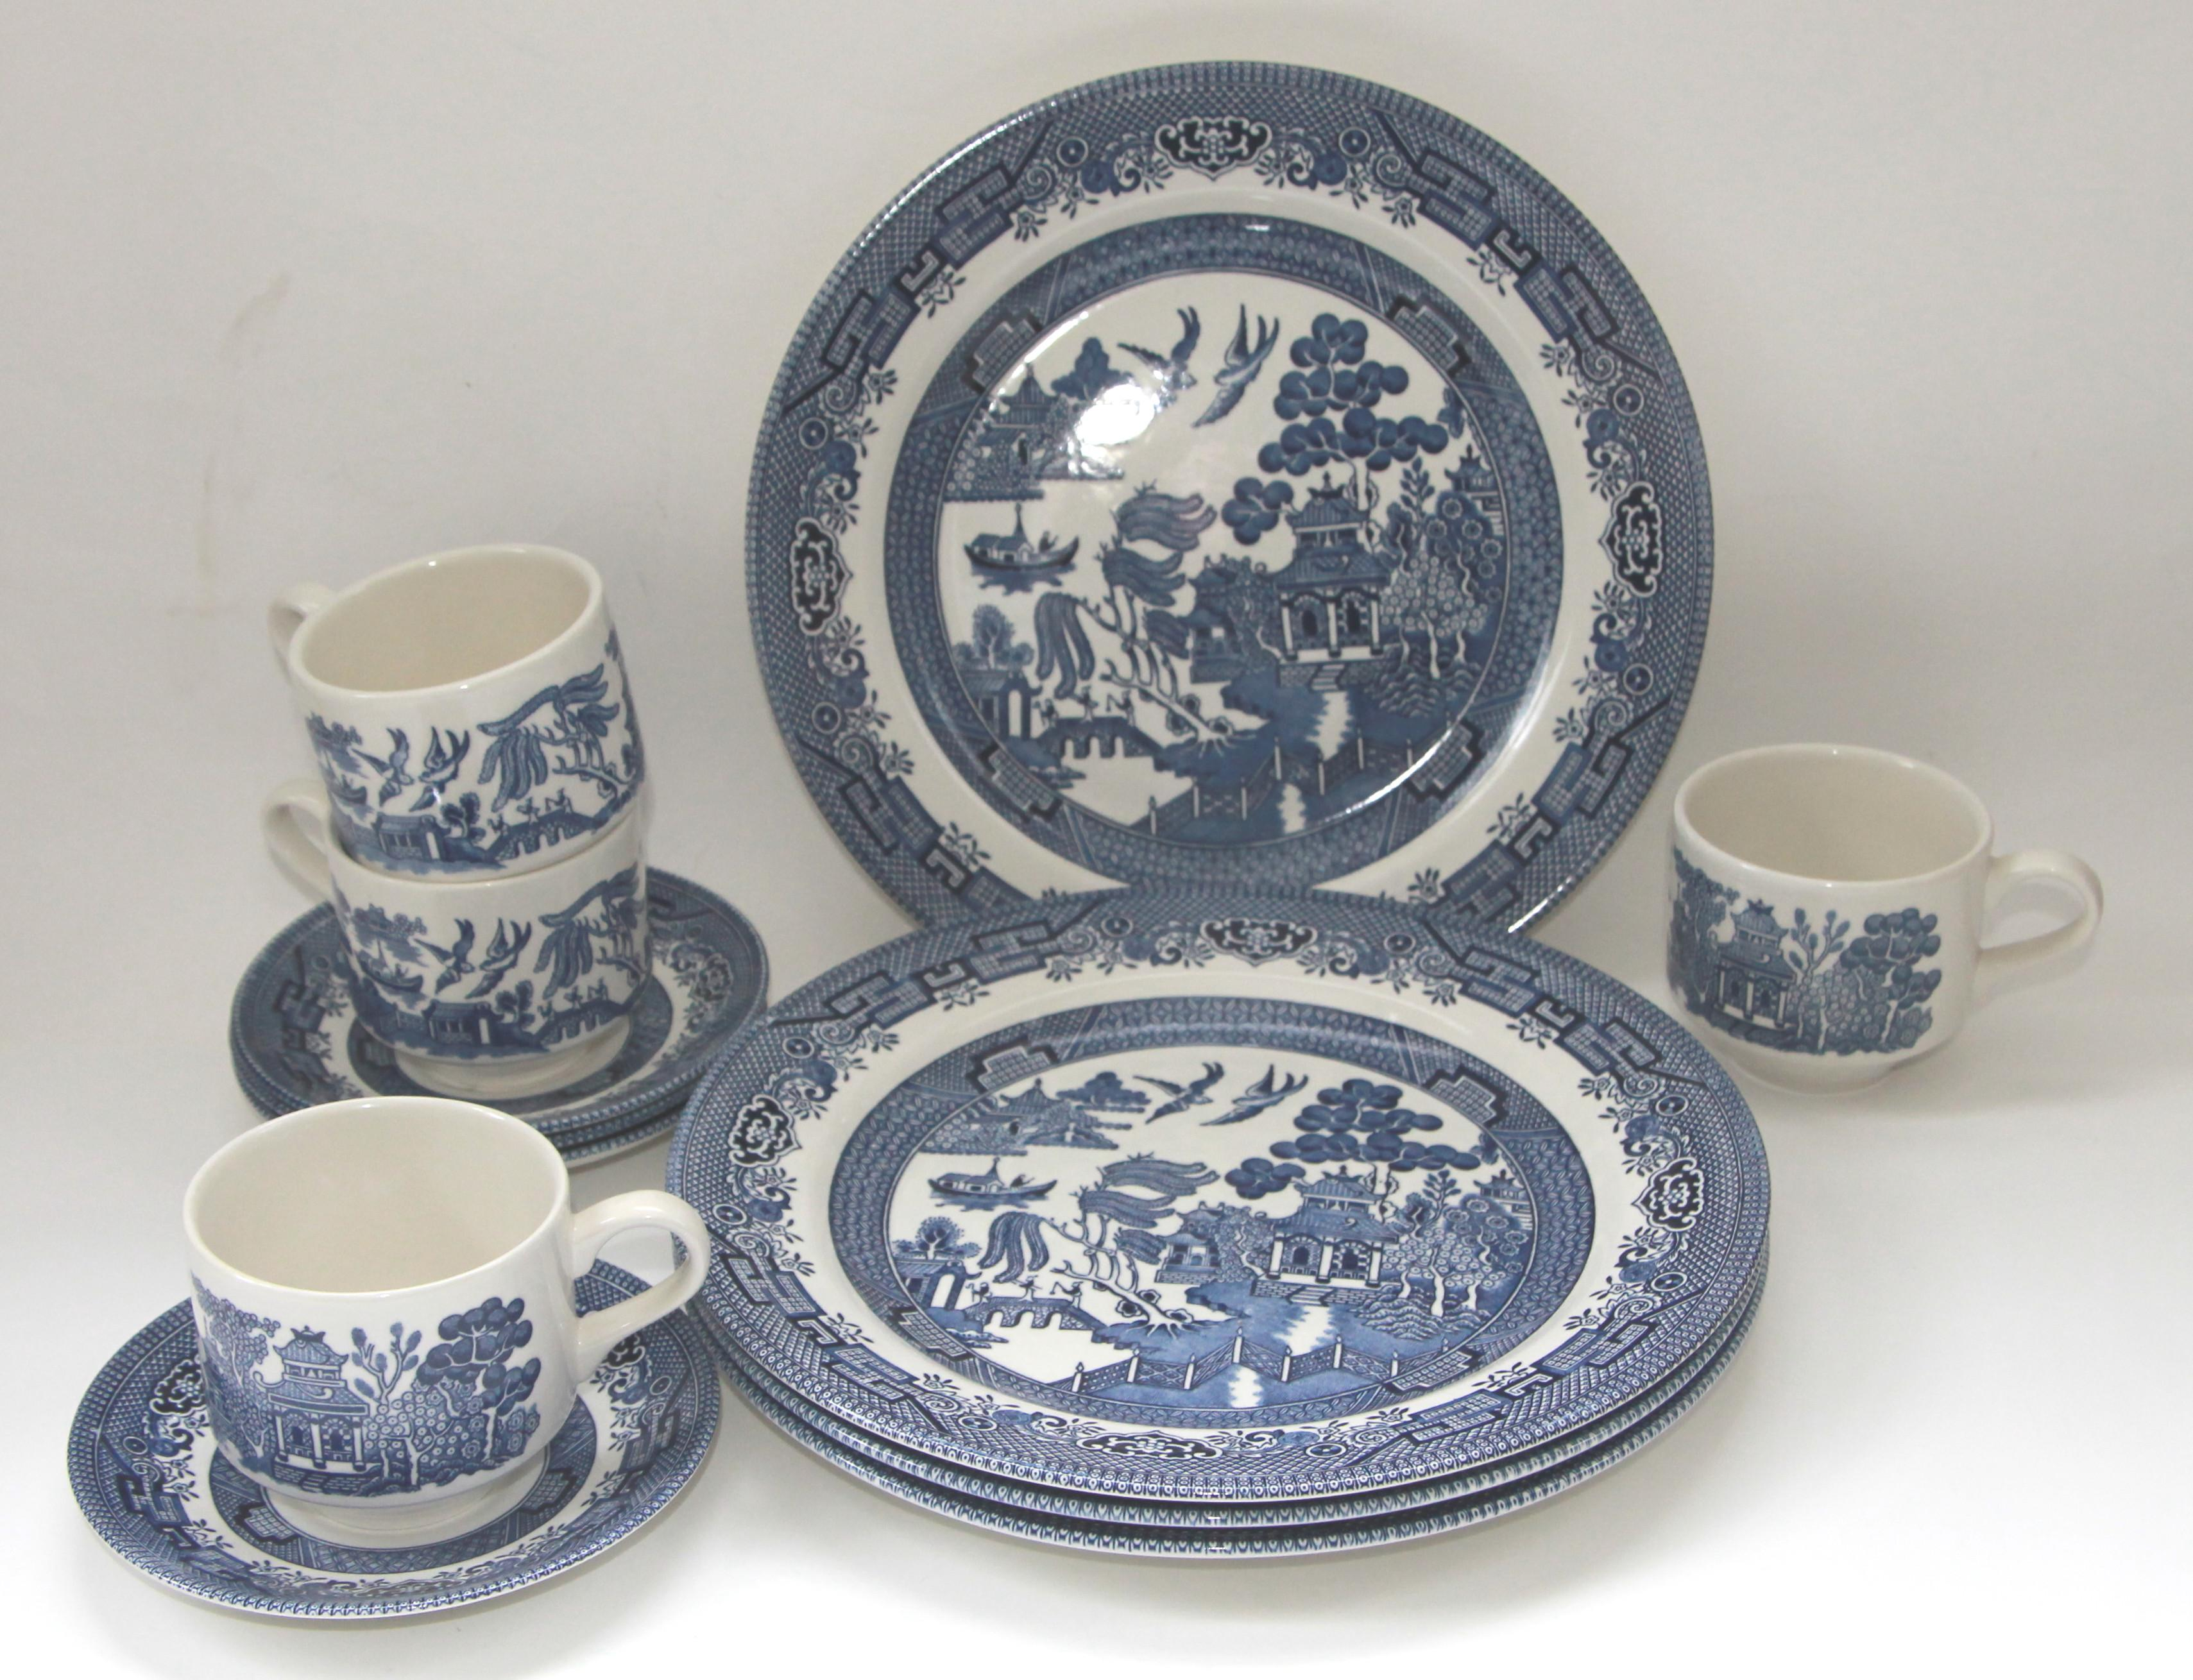 Blue Willow Churchill Transferware Plates Cups u0026 Saucers - Set of 12 - Image 4  sc 1 st  Chairish & Blue Willow Churchill Transferware Plates Cups u0026 Saucers - Set of ...